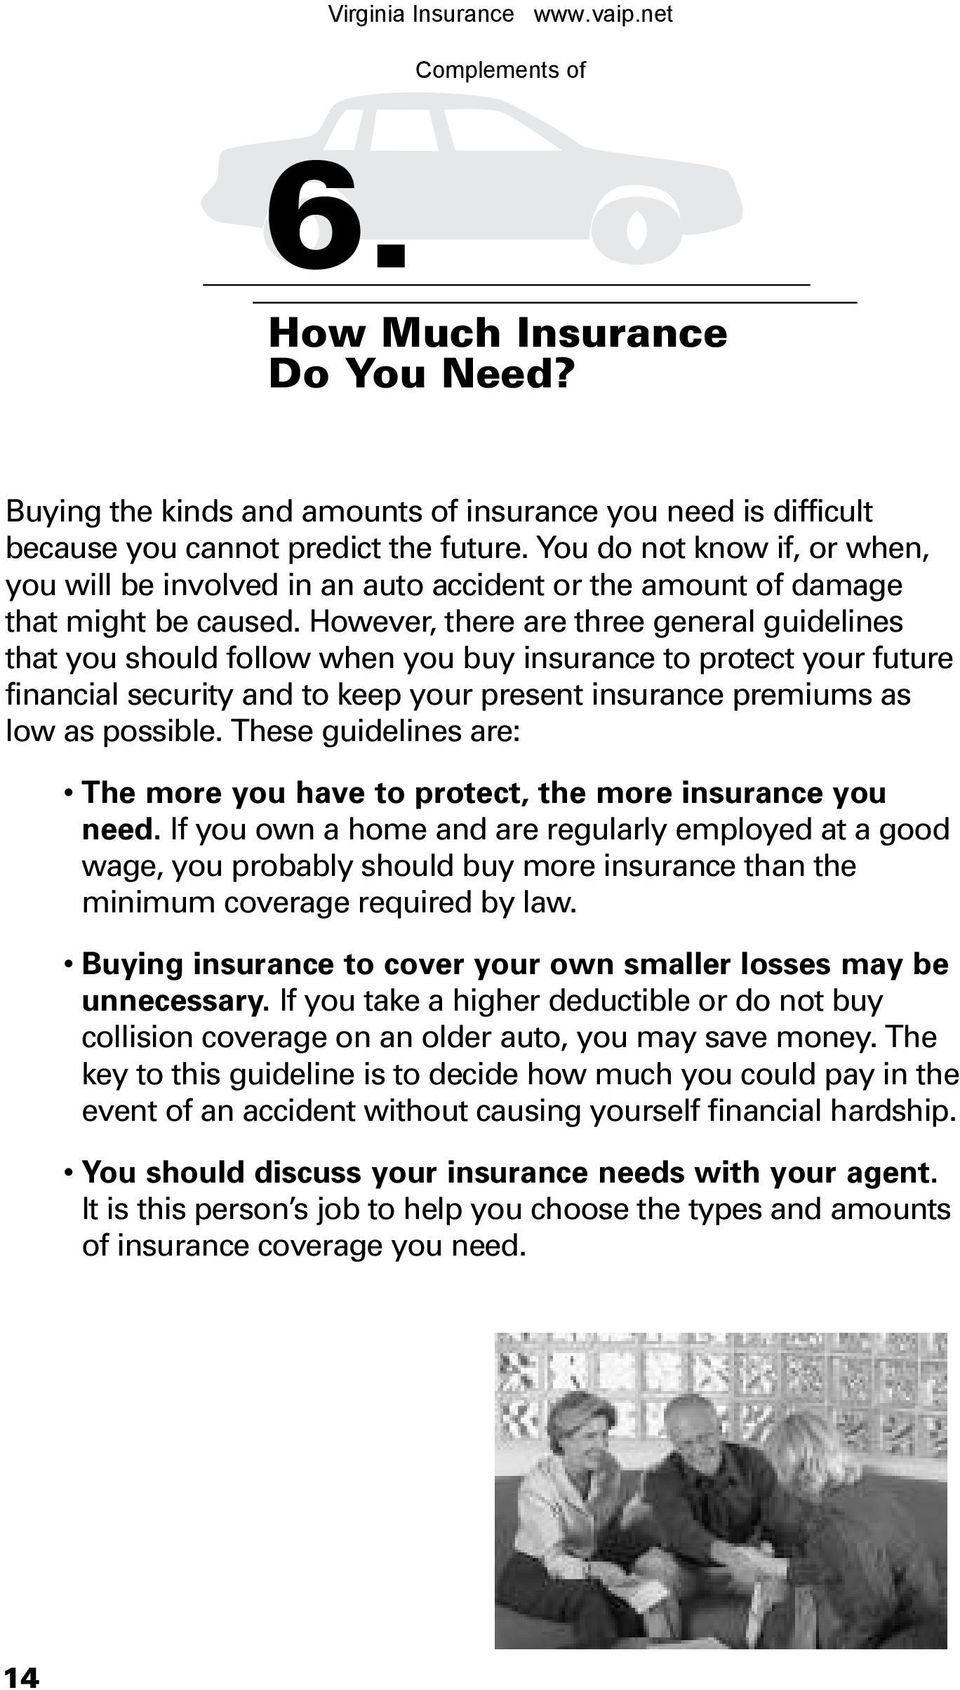 However, there are three general guidelines that you should follow when you buy insurance to protect your future financial security and to keep your present insurance premiums as low as possible.